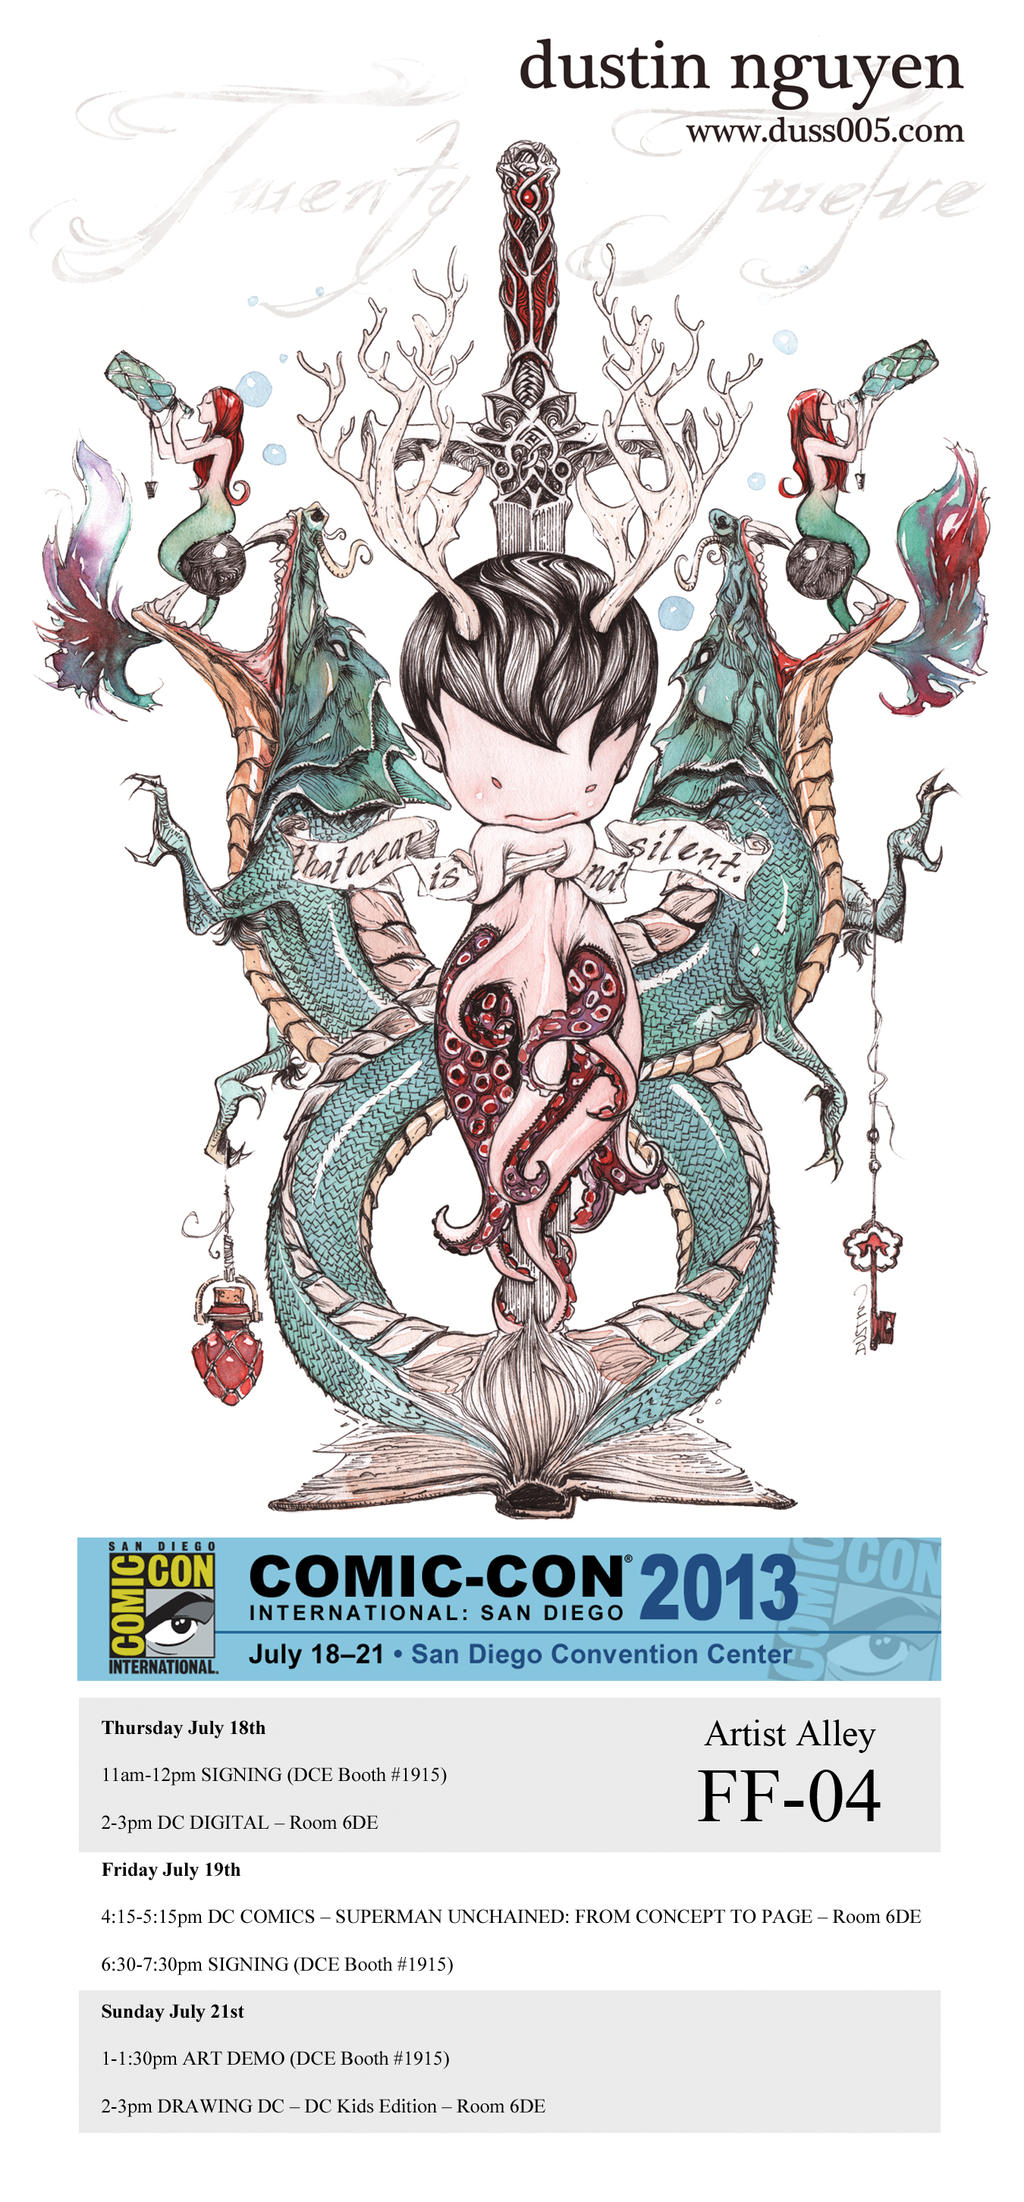 SDCC 2013 by duss005